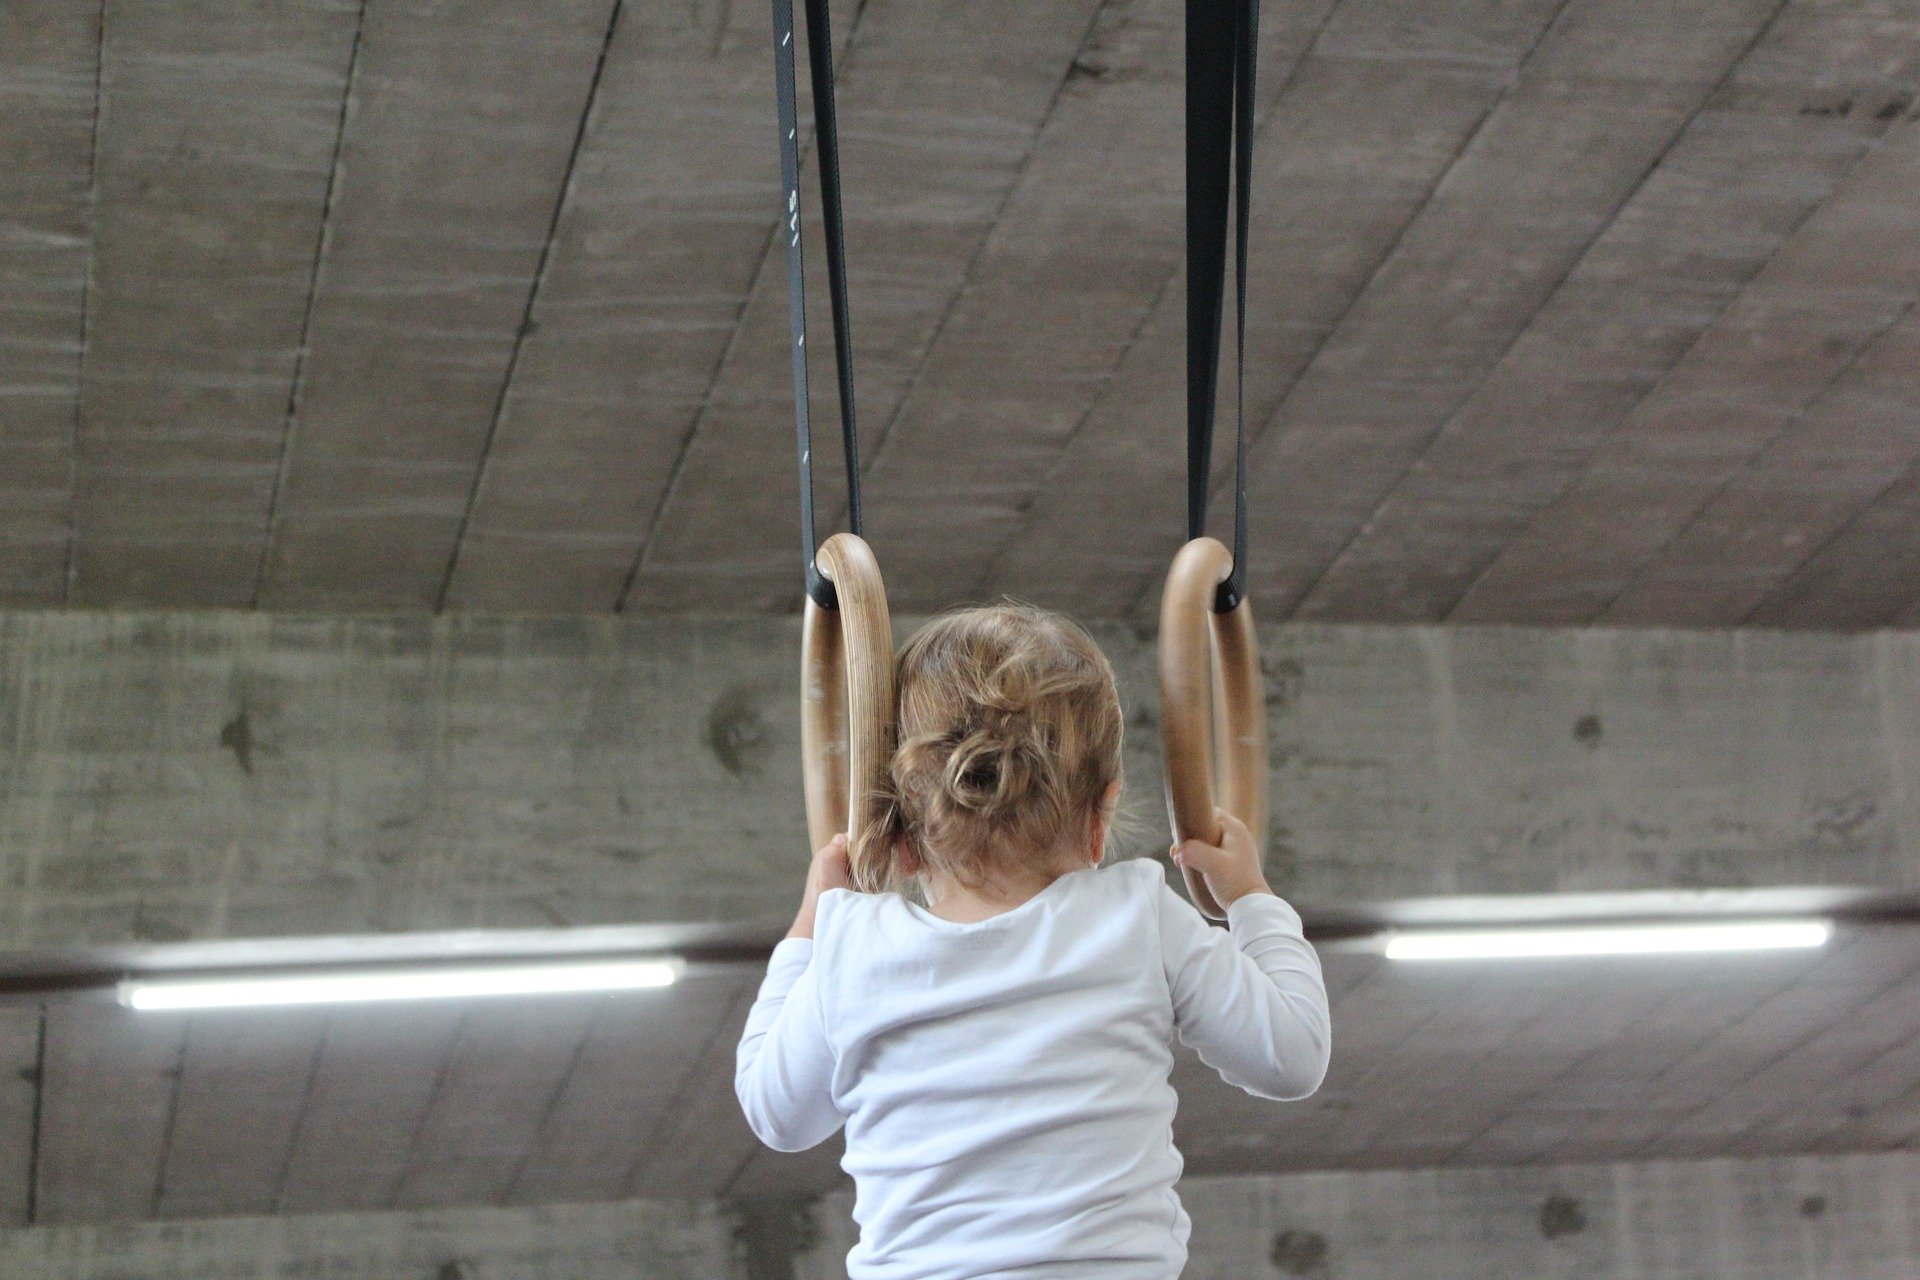 Olympic-Size Dreams, Little Girl on rings